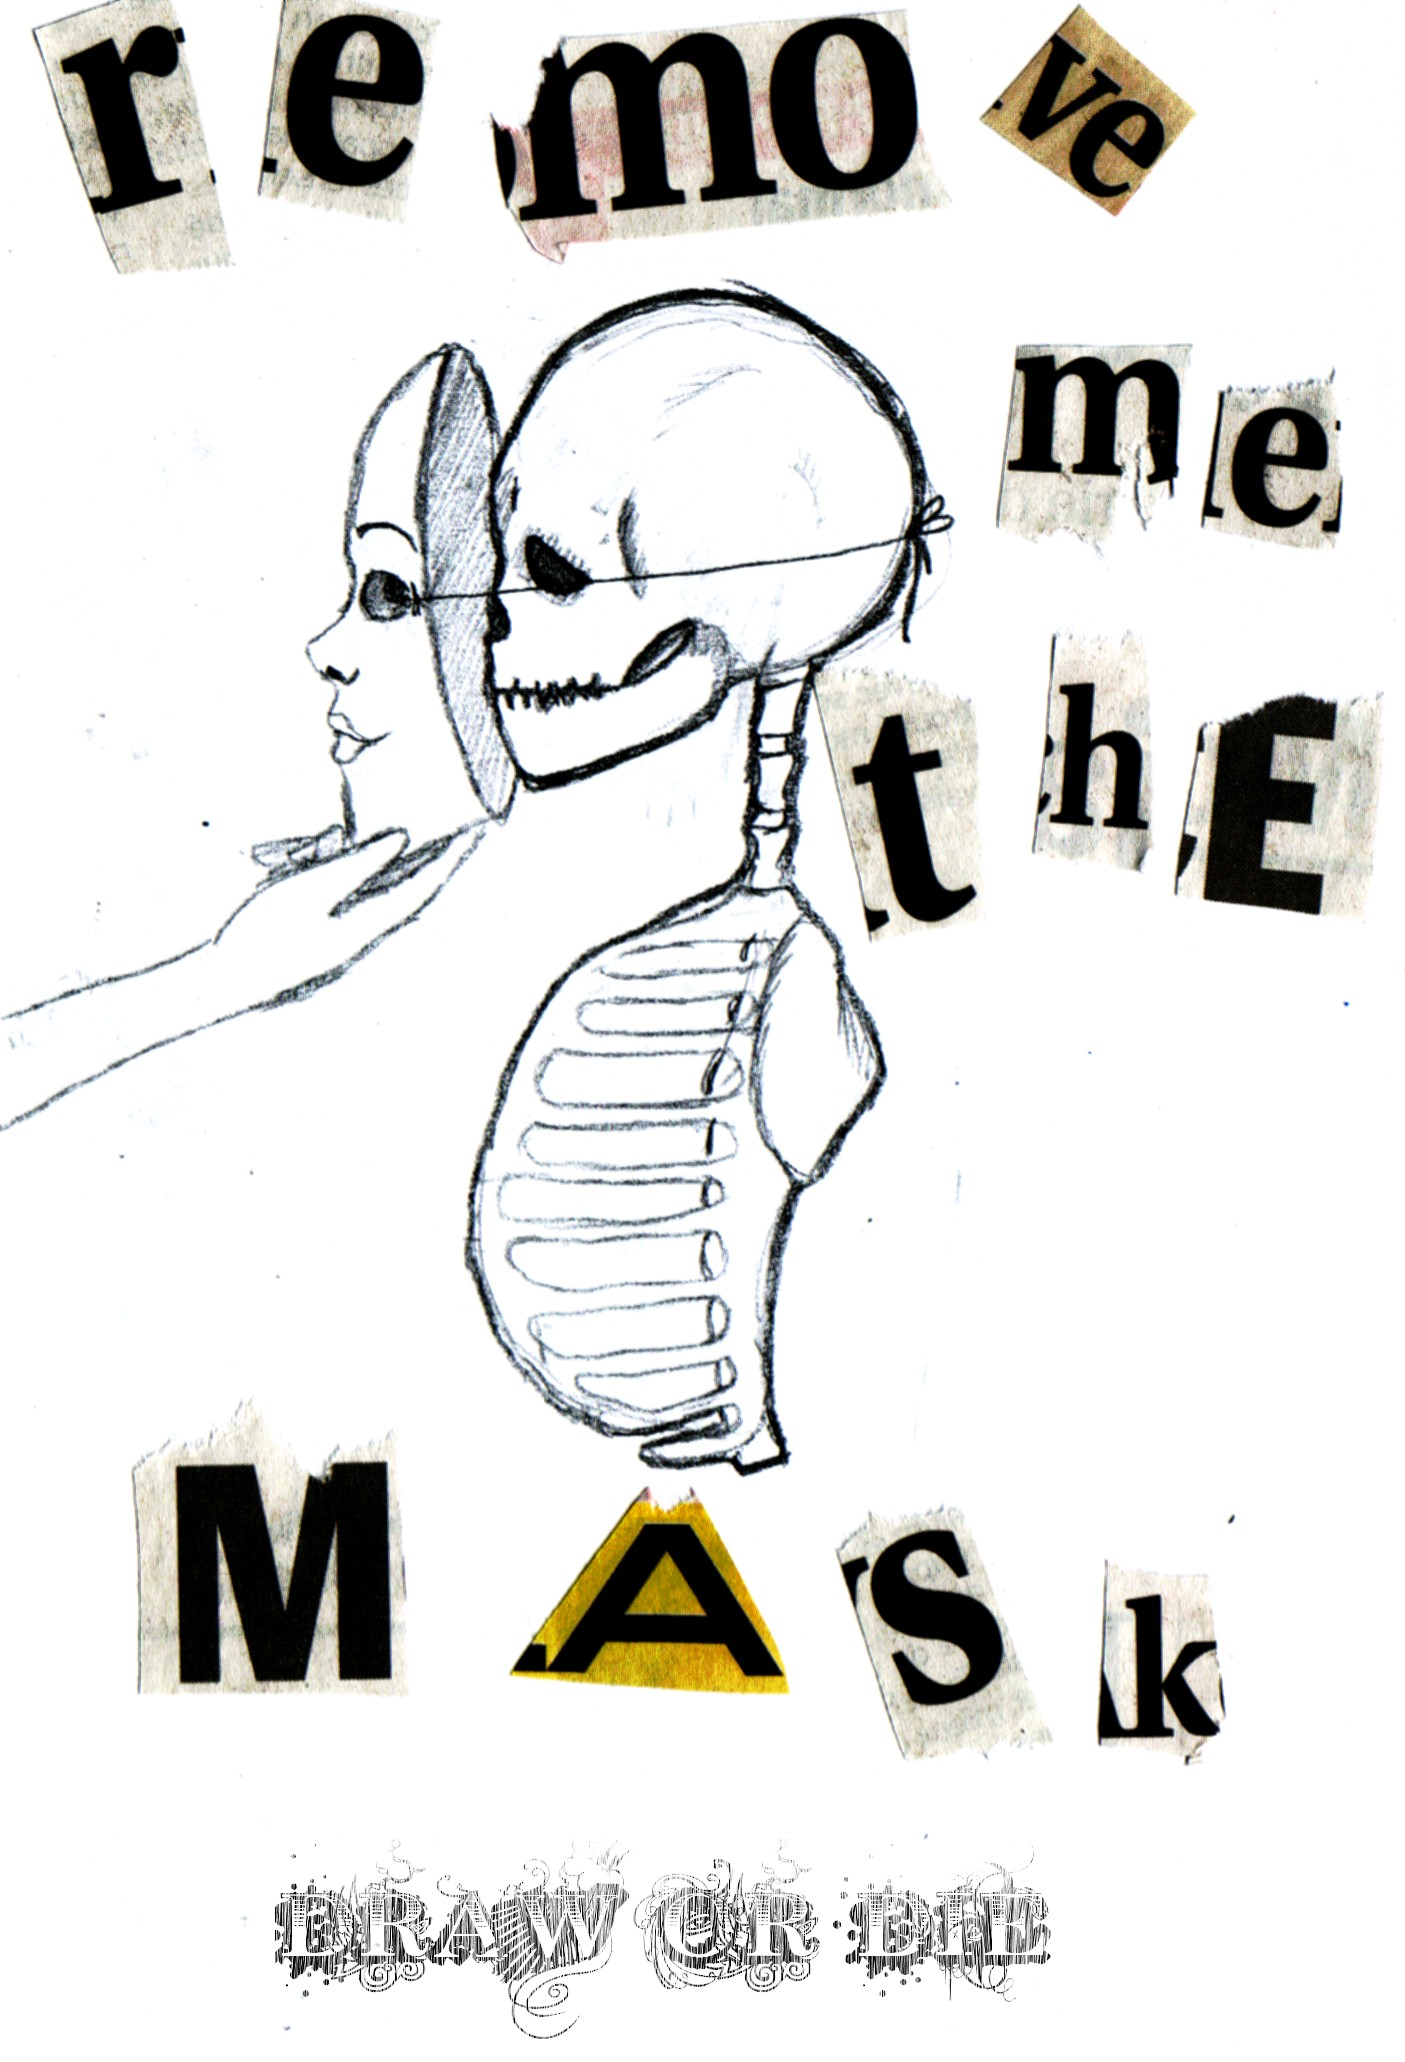 remove me the mask by punk drawordie on deviantart